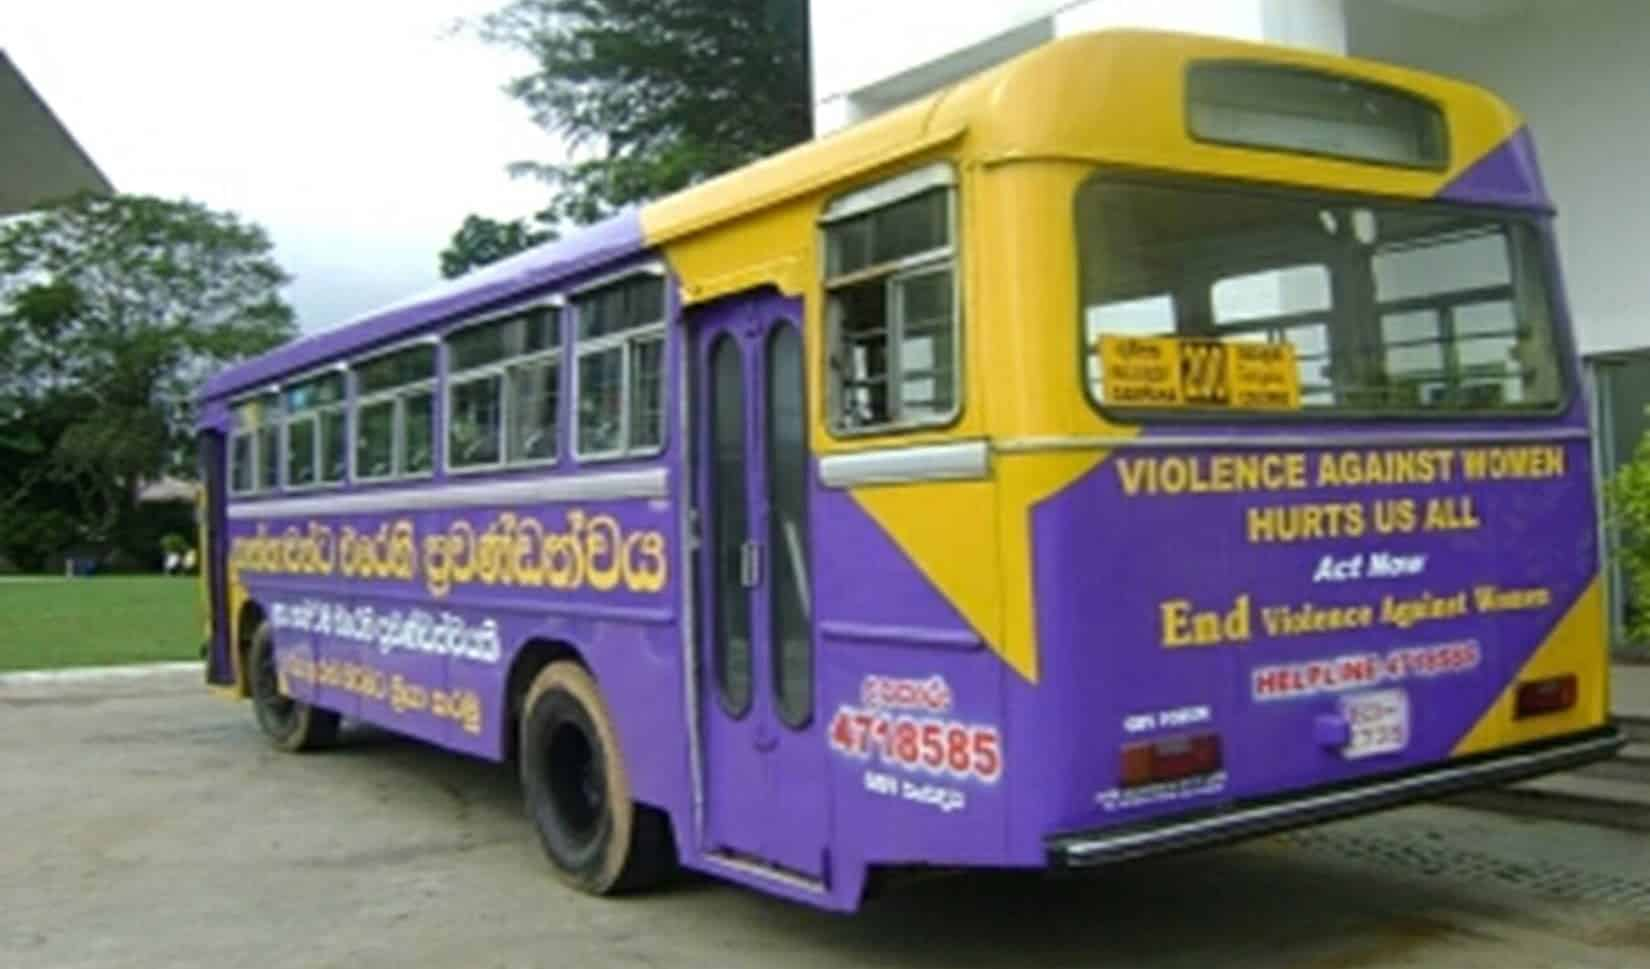 A purple and yellow bus with